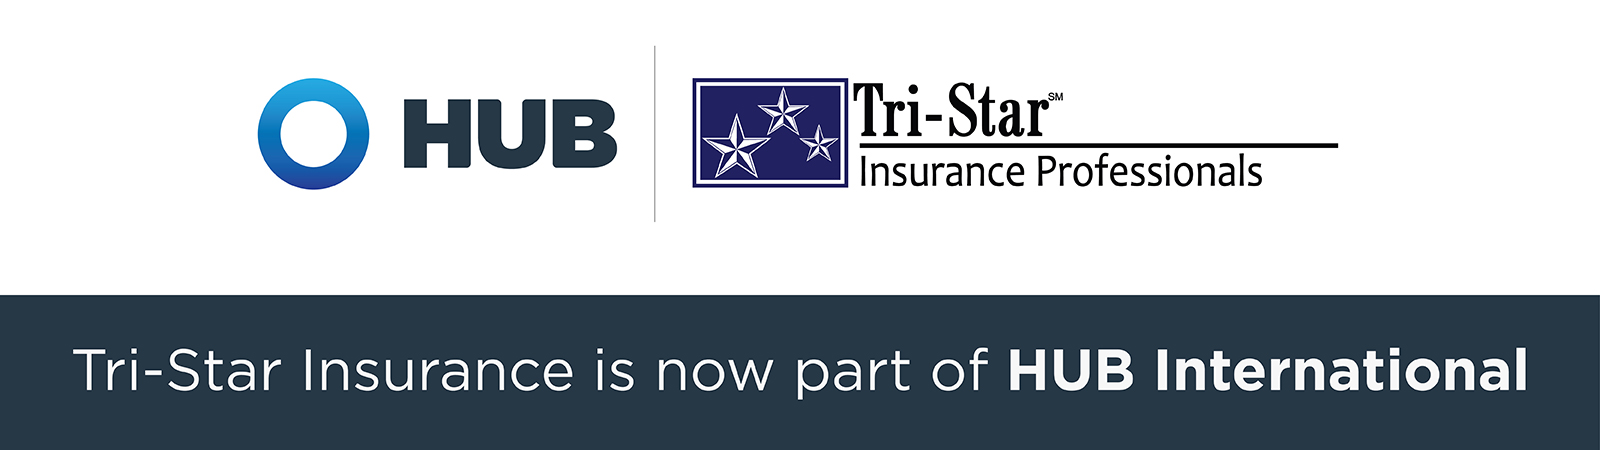 Independent Insurance Agency Plano TX | Tri-Star Insurance